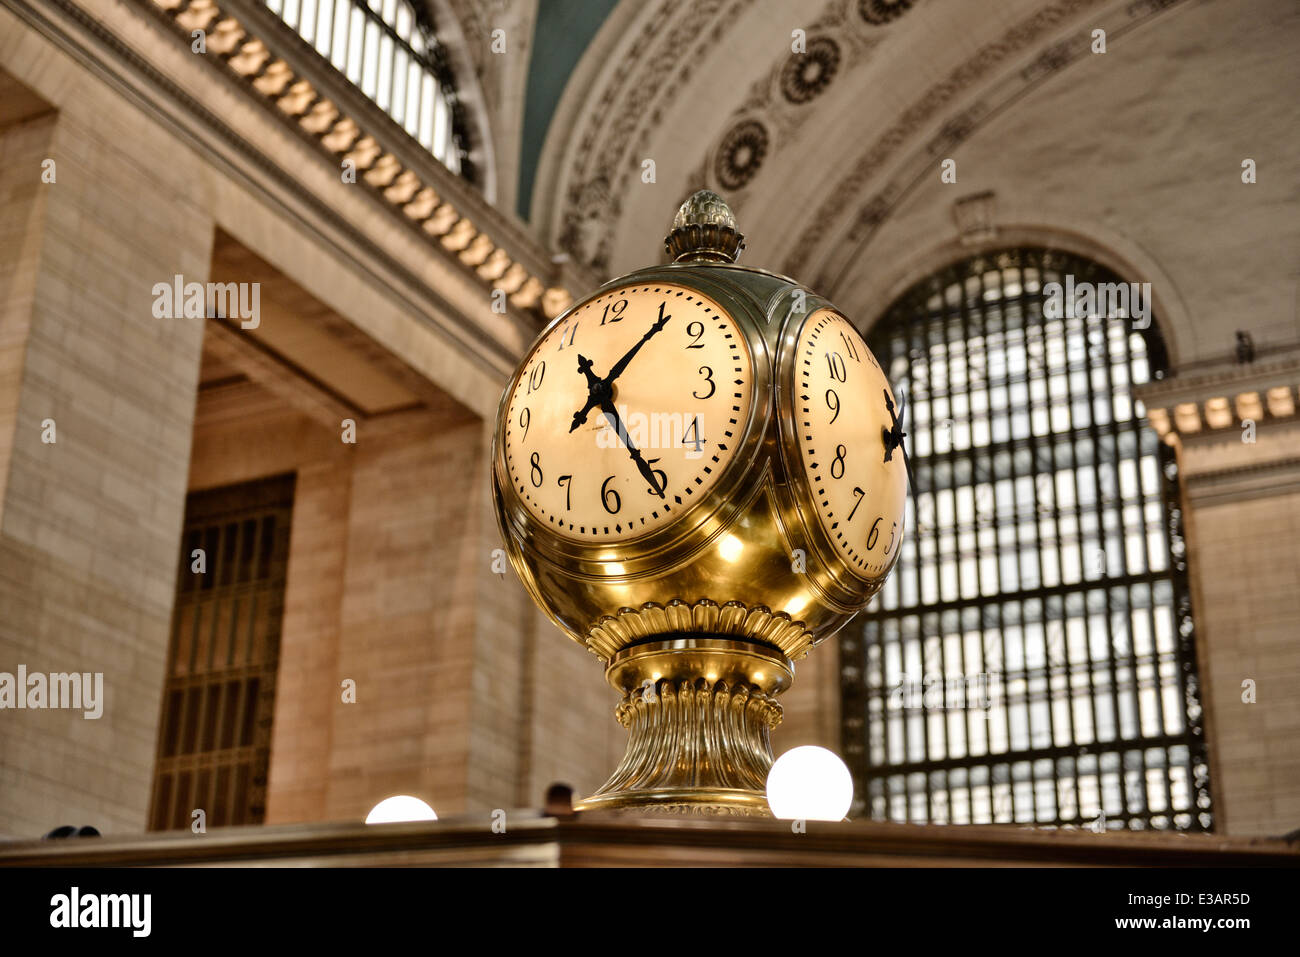 Clock at Grand Central Station, made of Brass and Opal Glass, 100 year old - Stock Image